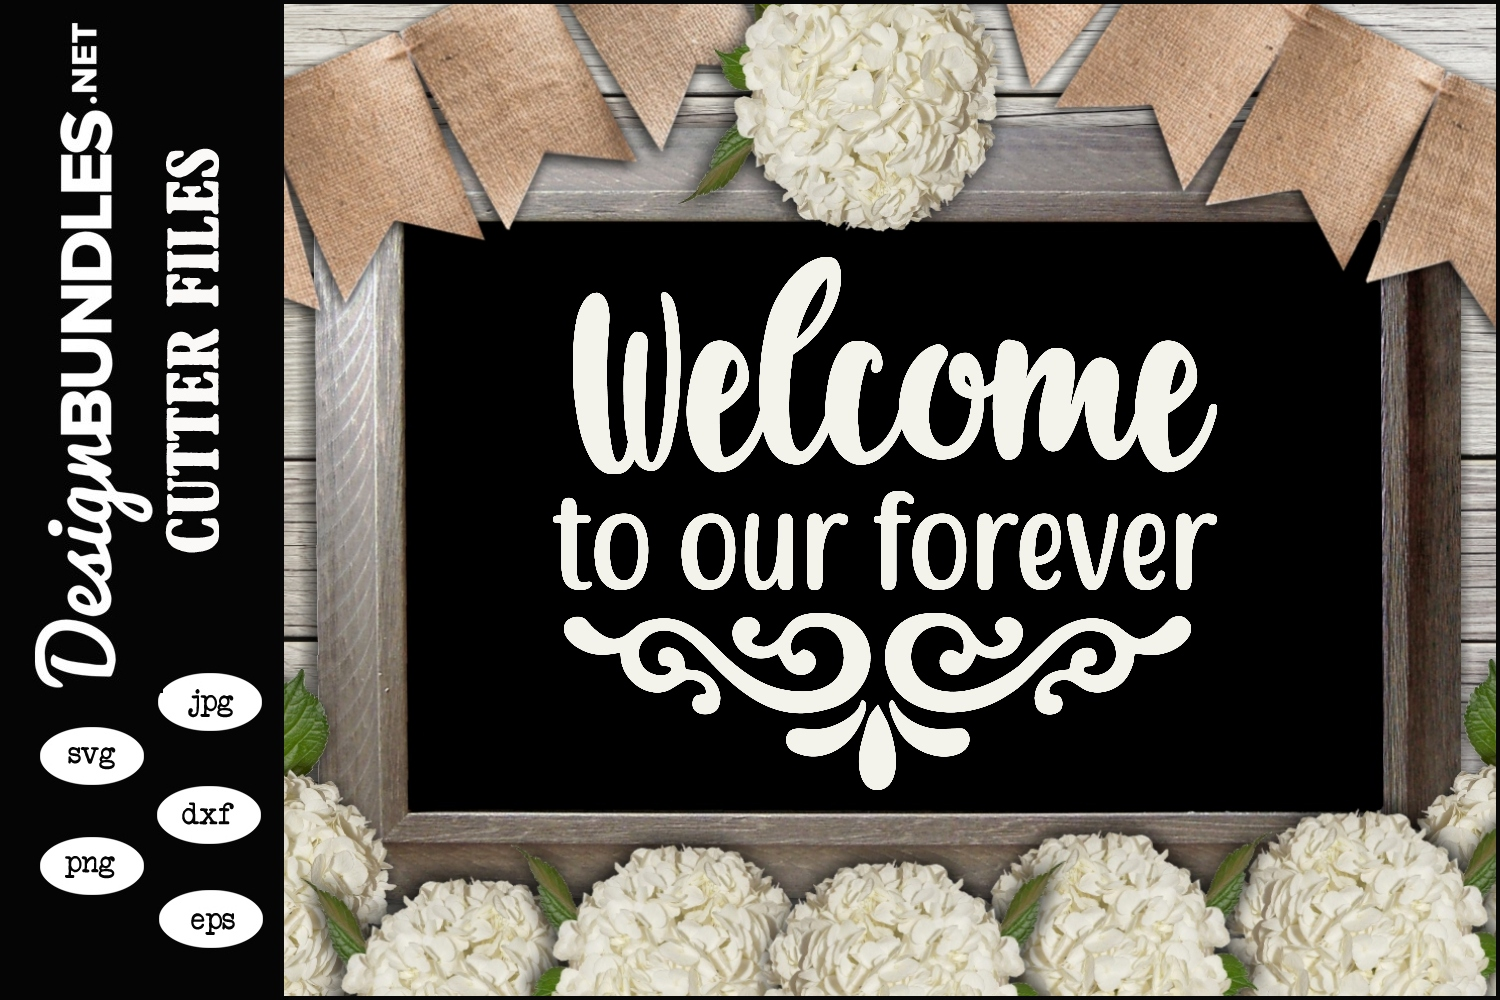 Welcome To Our Forever-Wedding Sign SVG example image 1